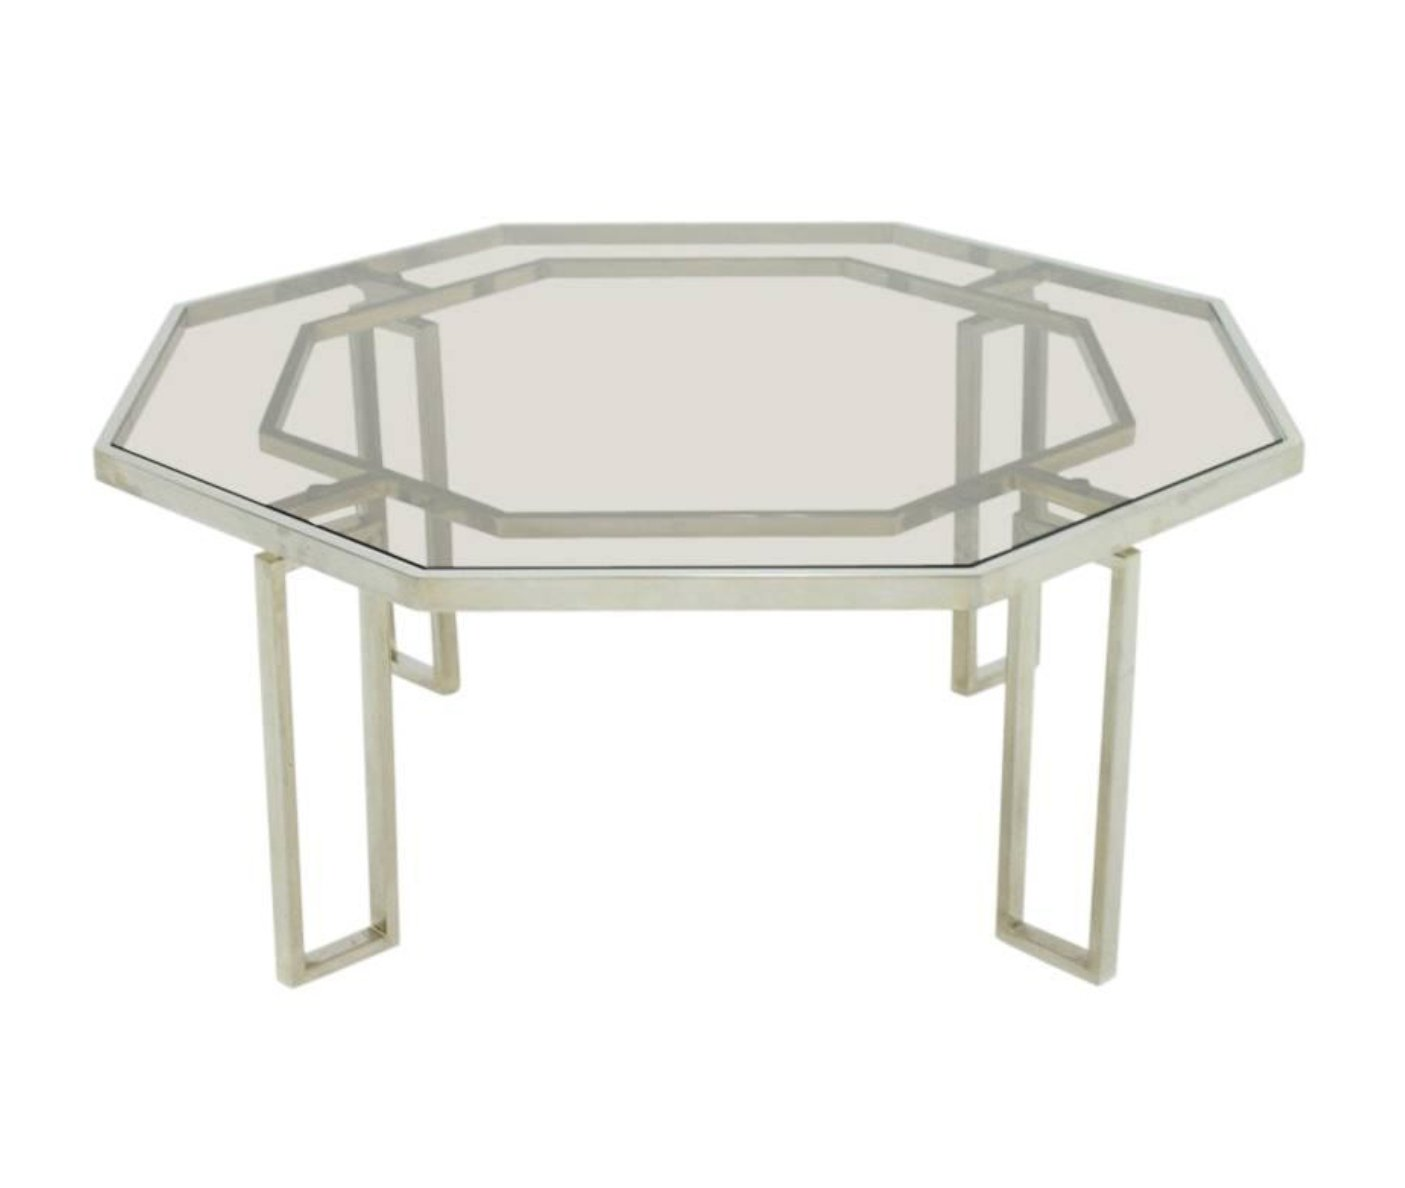 Octagonal Coffee Table With Metal Base Glass Top 1960s 92420